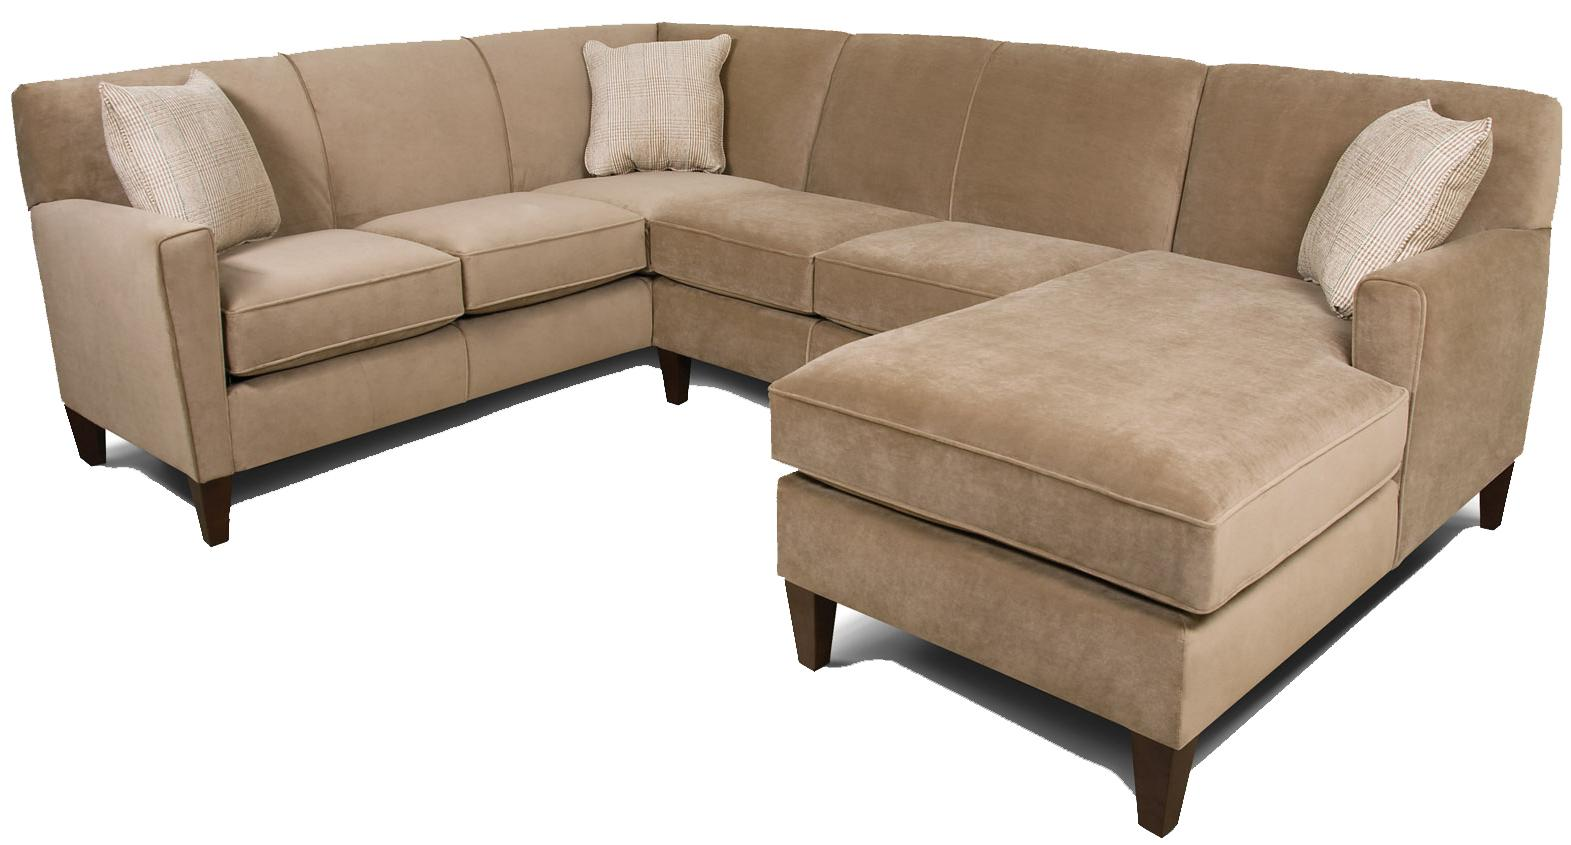 sectional good rooms sofa sleeper green queen sofas for beds bed spaces small